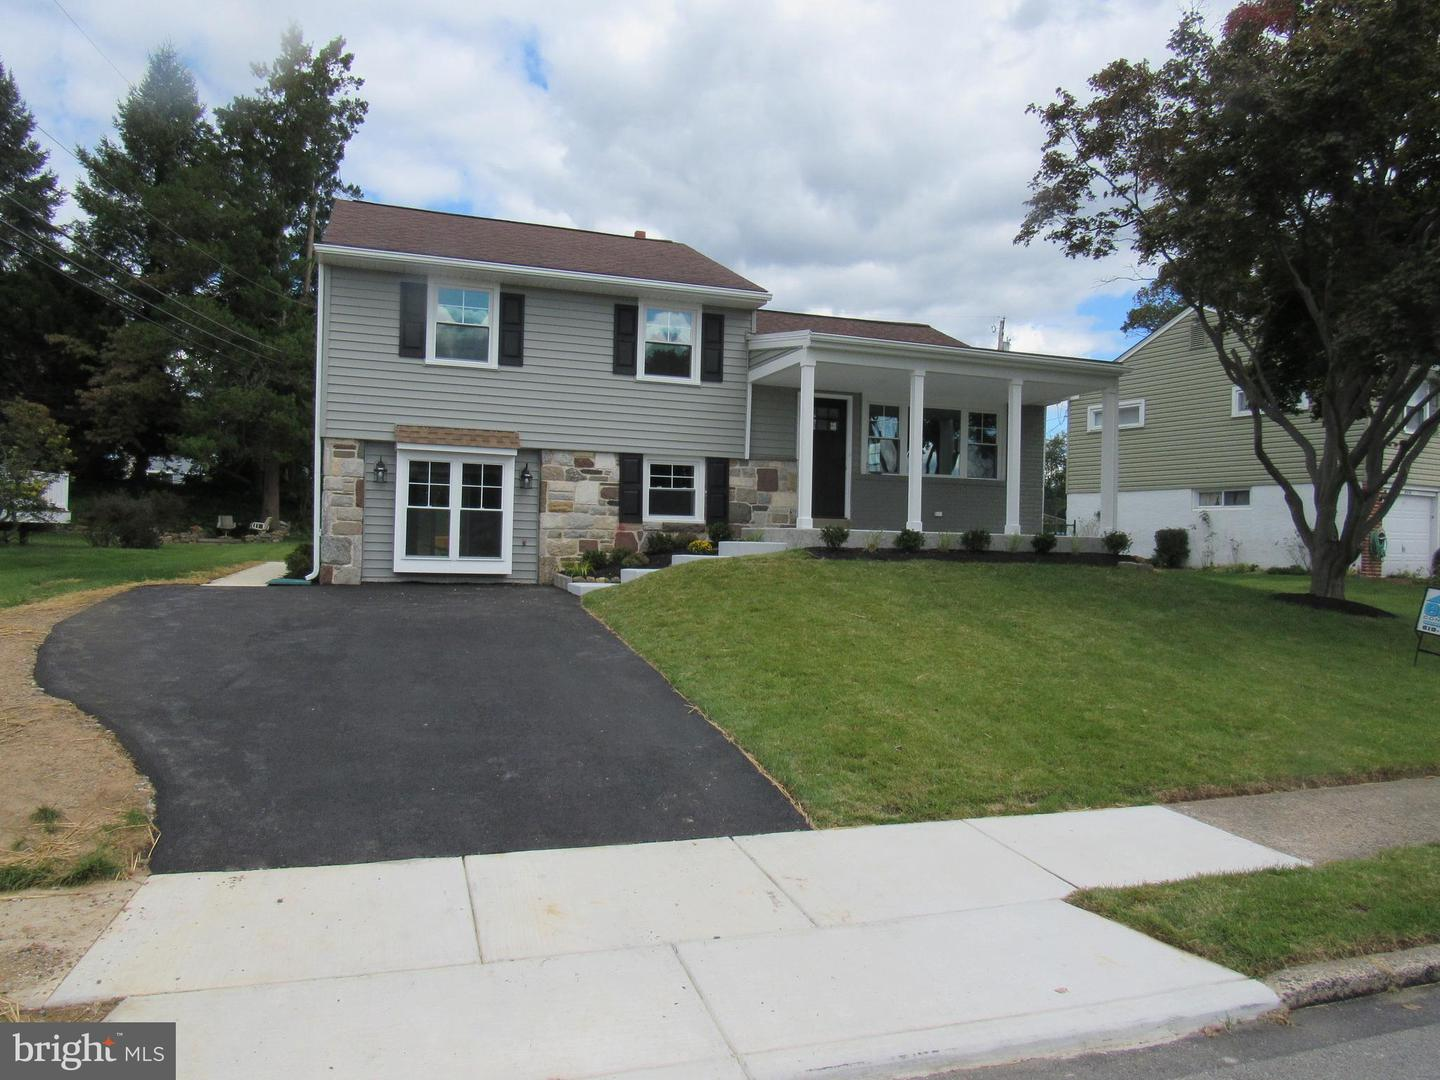 402 S Central Broomall, PA 19008